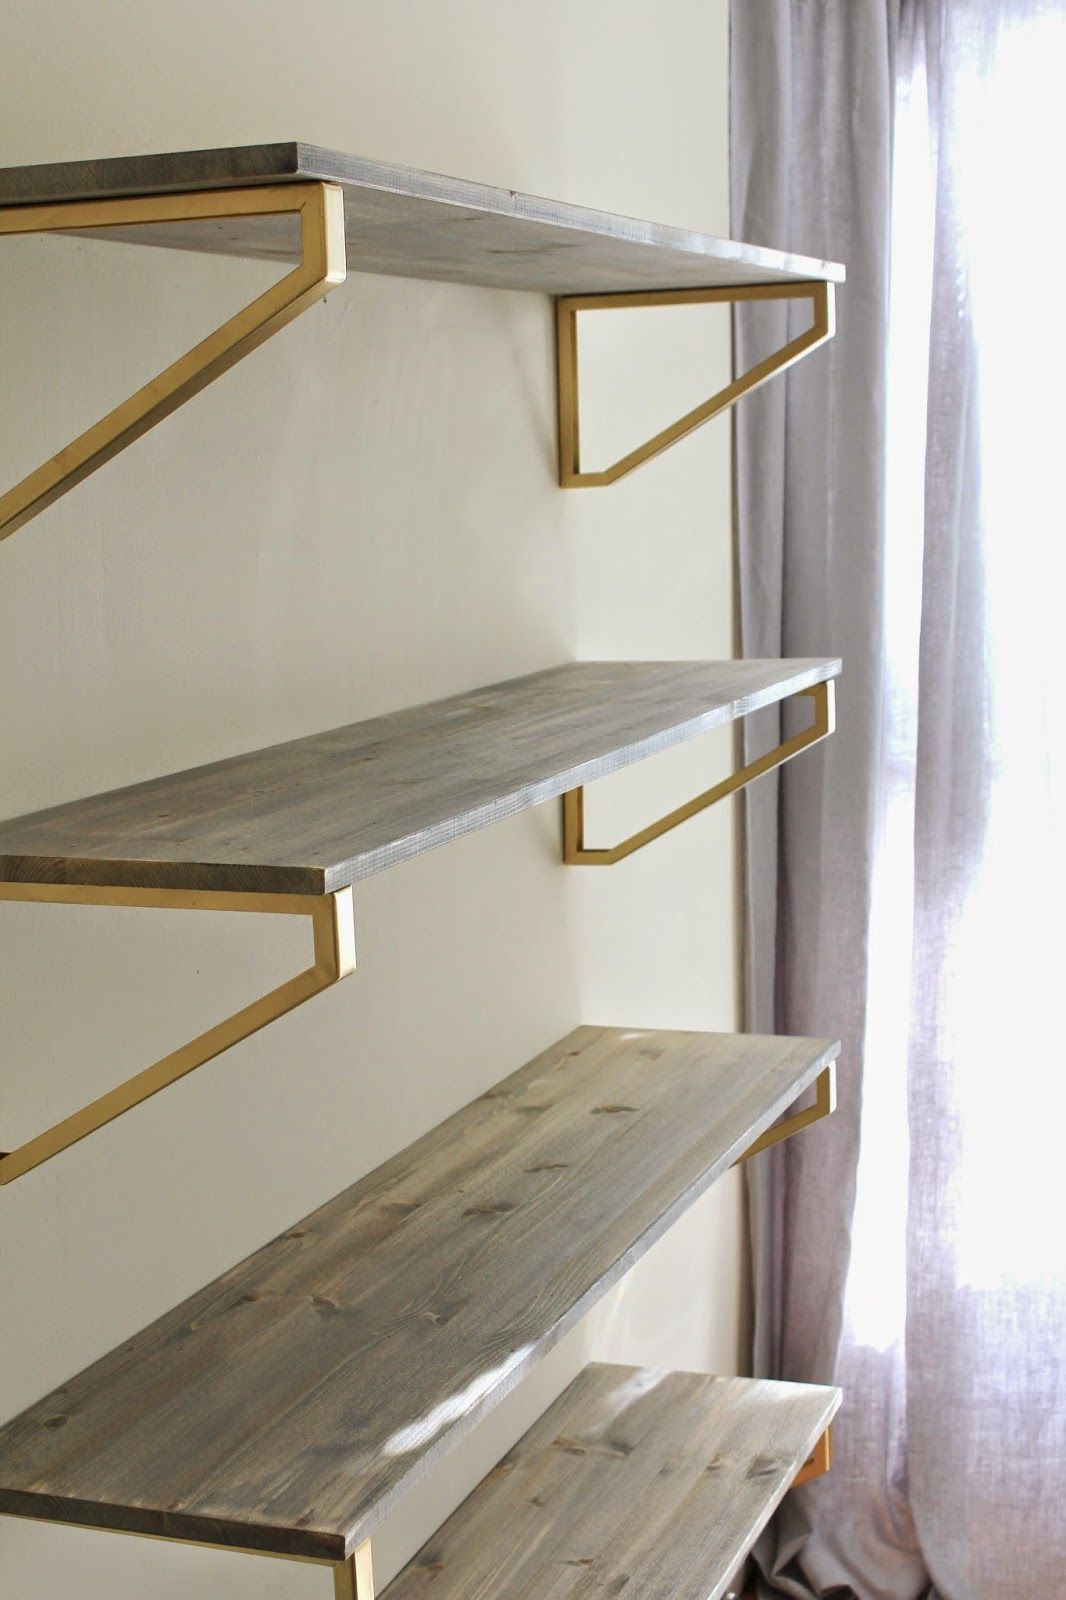 Gold Floating Shelves Prepossessing Cup Half Full Rustic Wood Shelf Diy Using Ikea Ekby Lerberg 2018